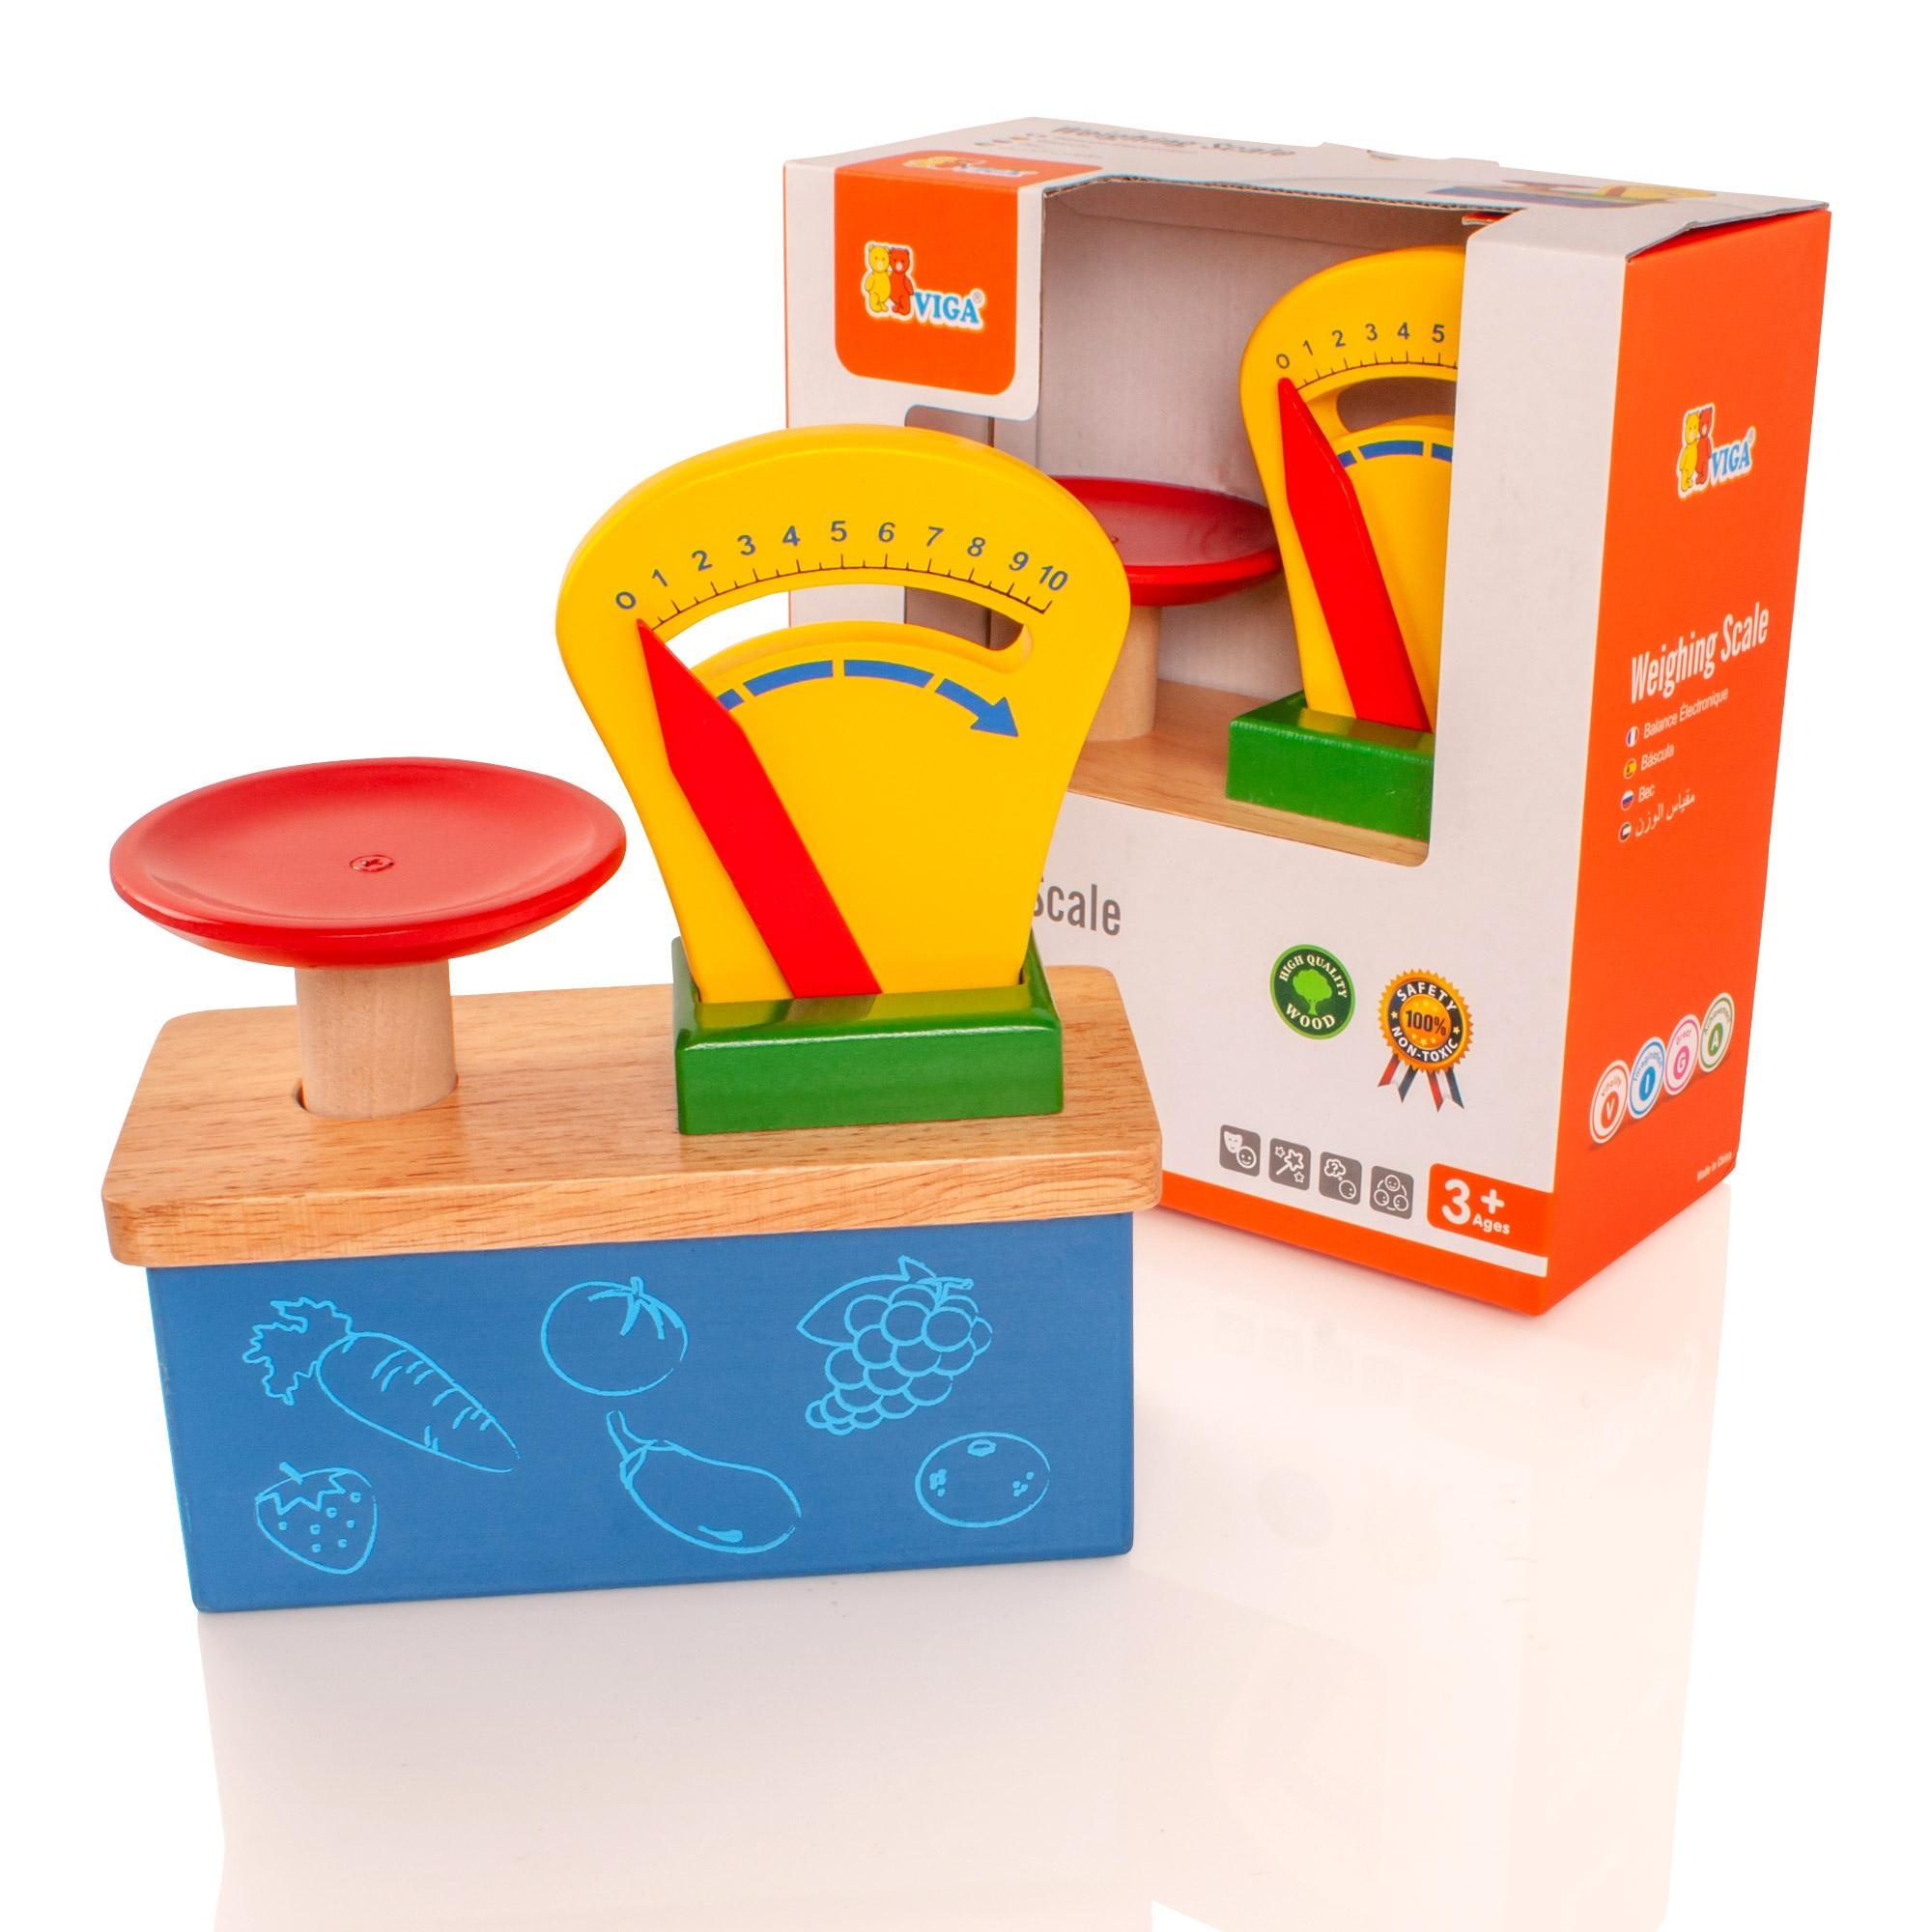 Childrens wooden kitchen shop weighing scales pretend play for Cuisine wooden